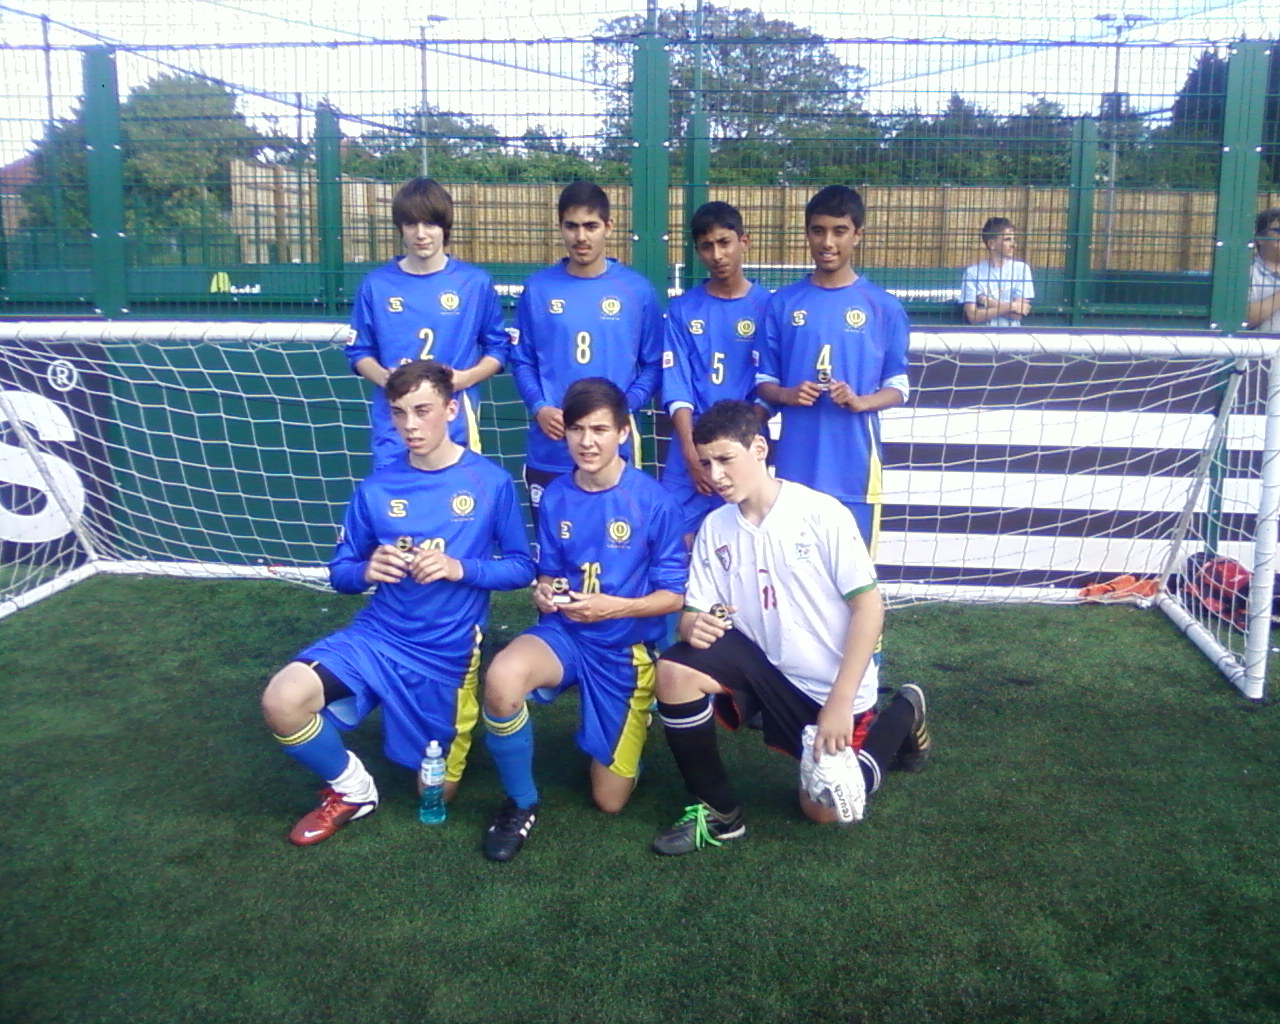 2011 Under 14's - Kent FA 5-a-side Runners Up